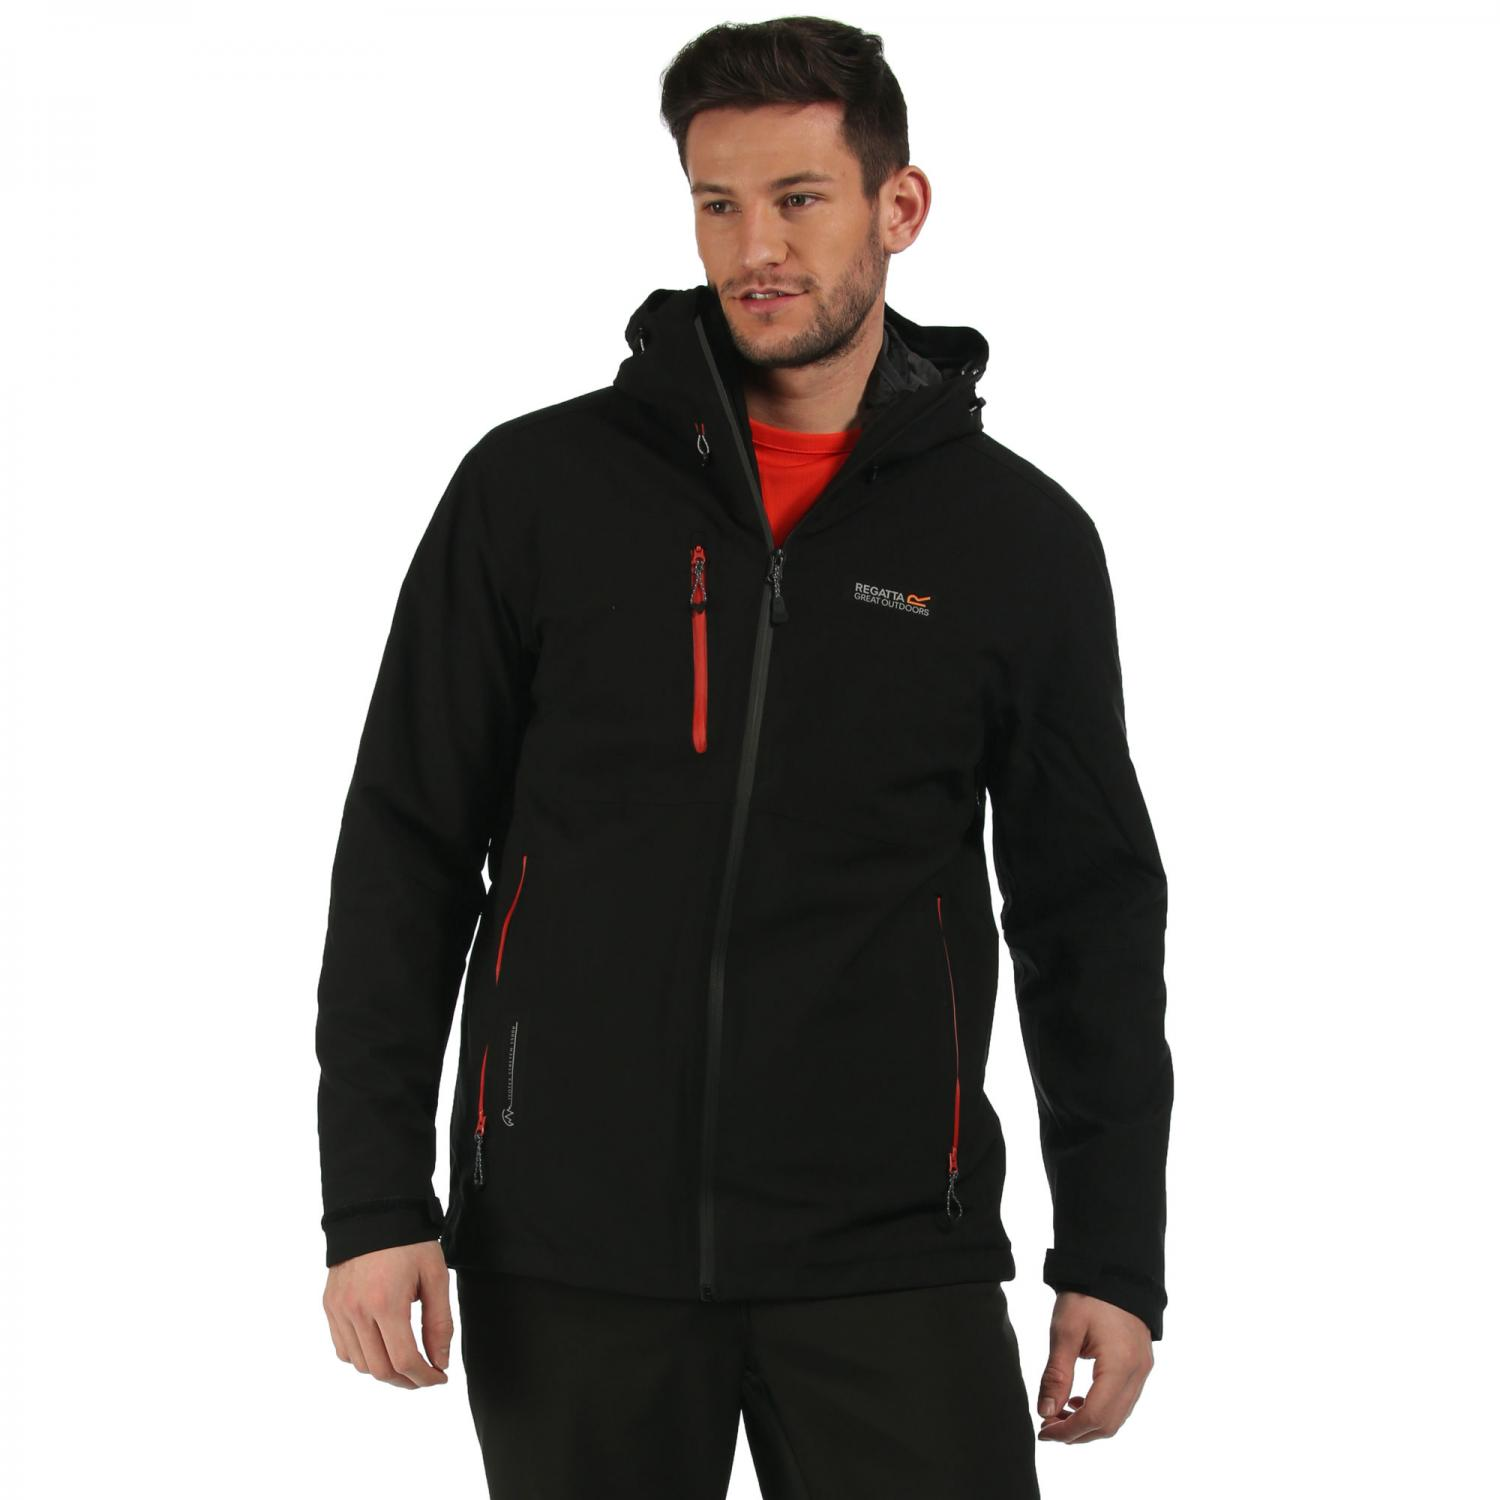 Wentwood 3 in 1 Jacket Black